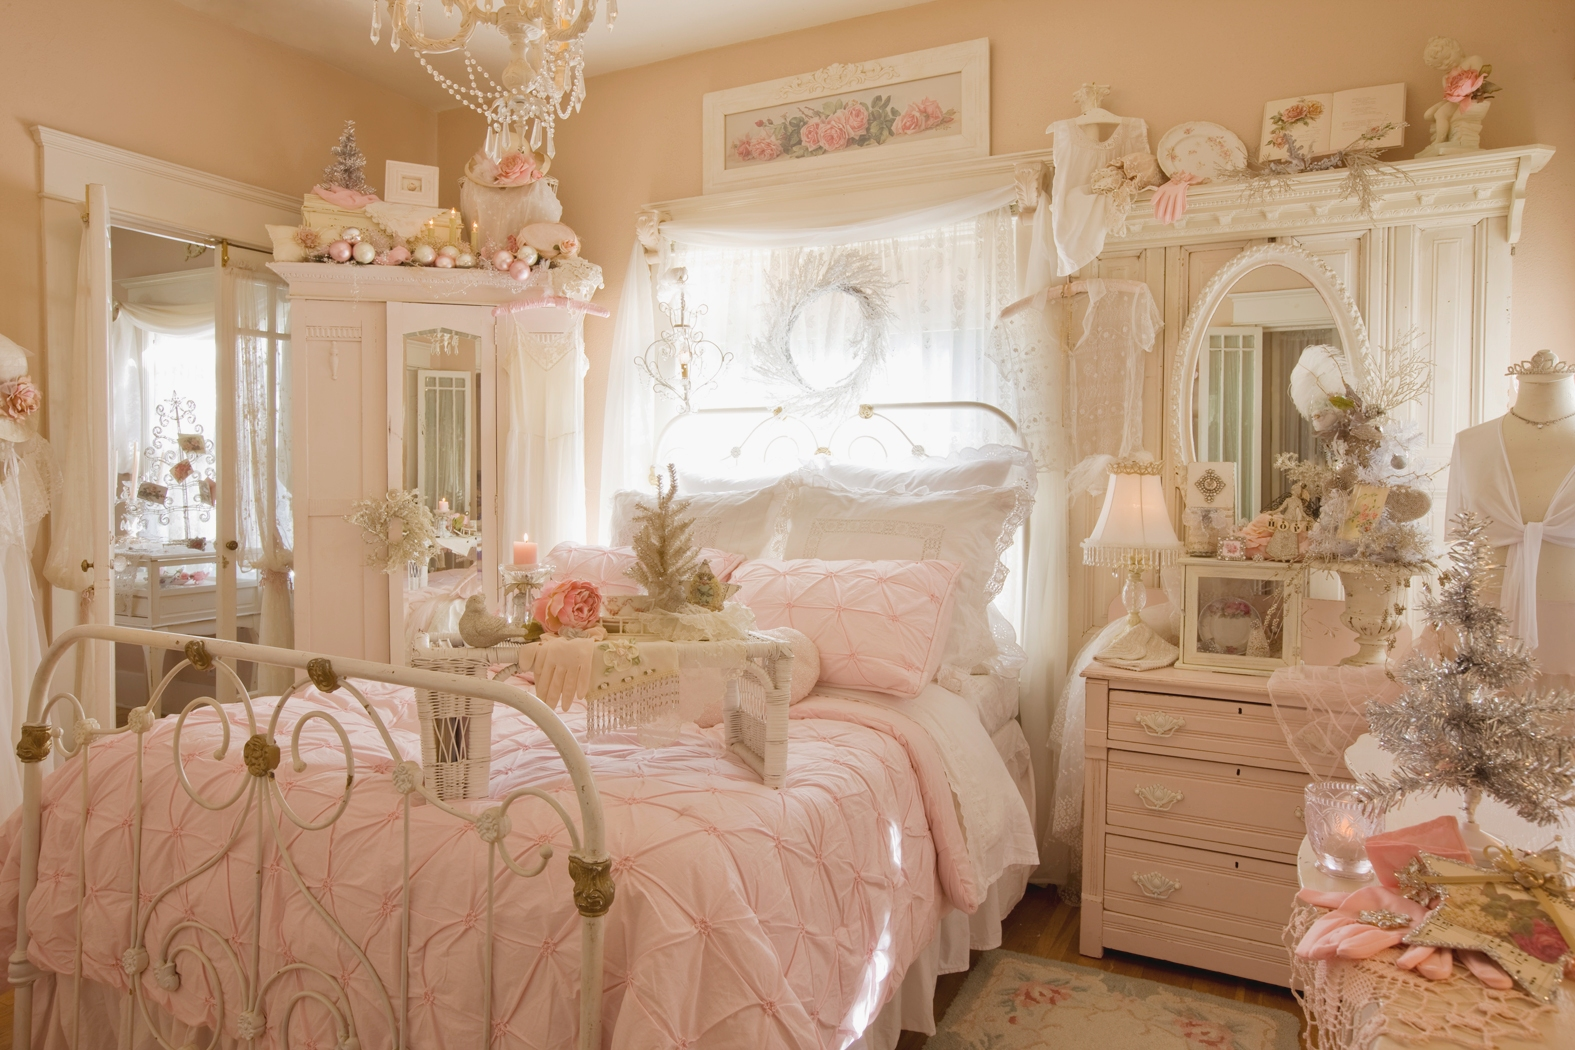 Bedroom ideas further india girls bedroom ideas as well hello kitty